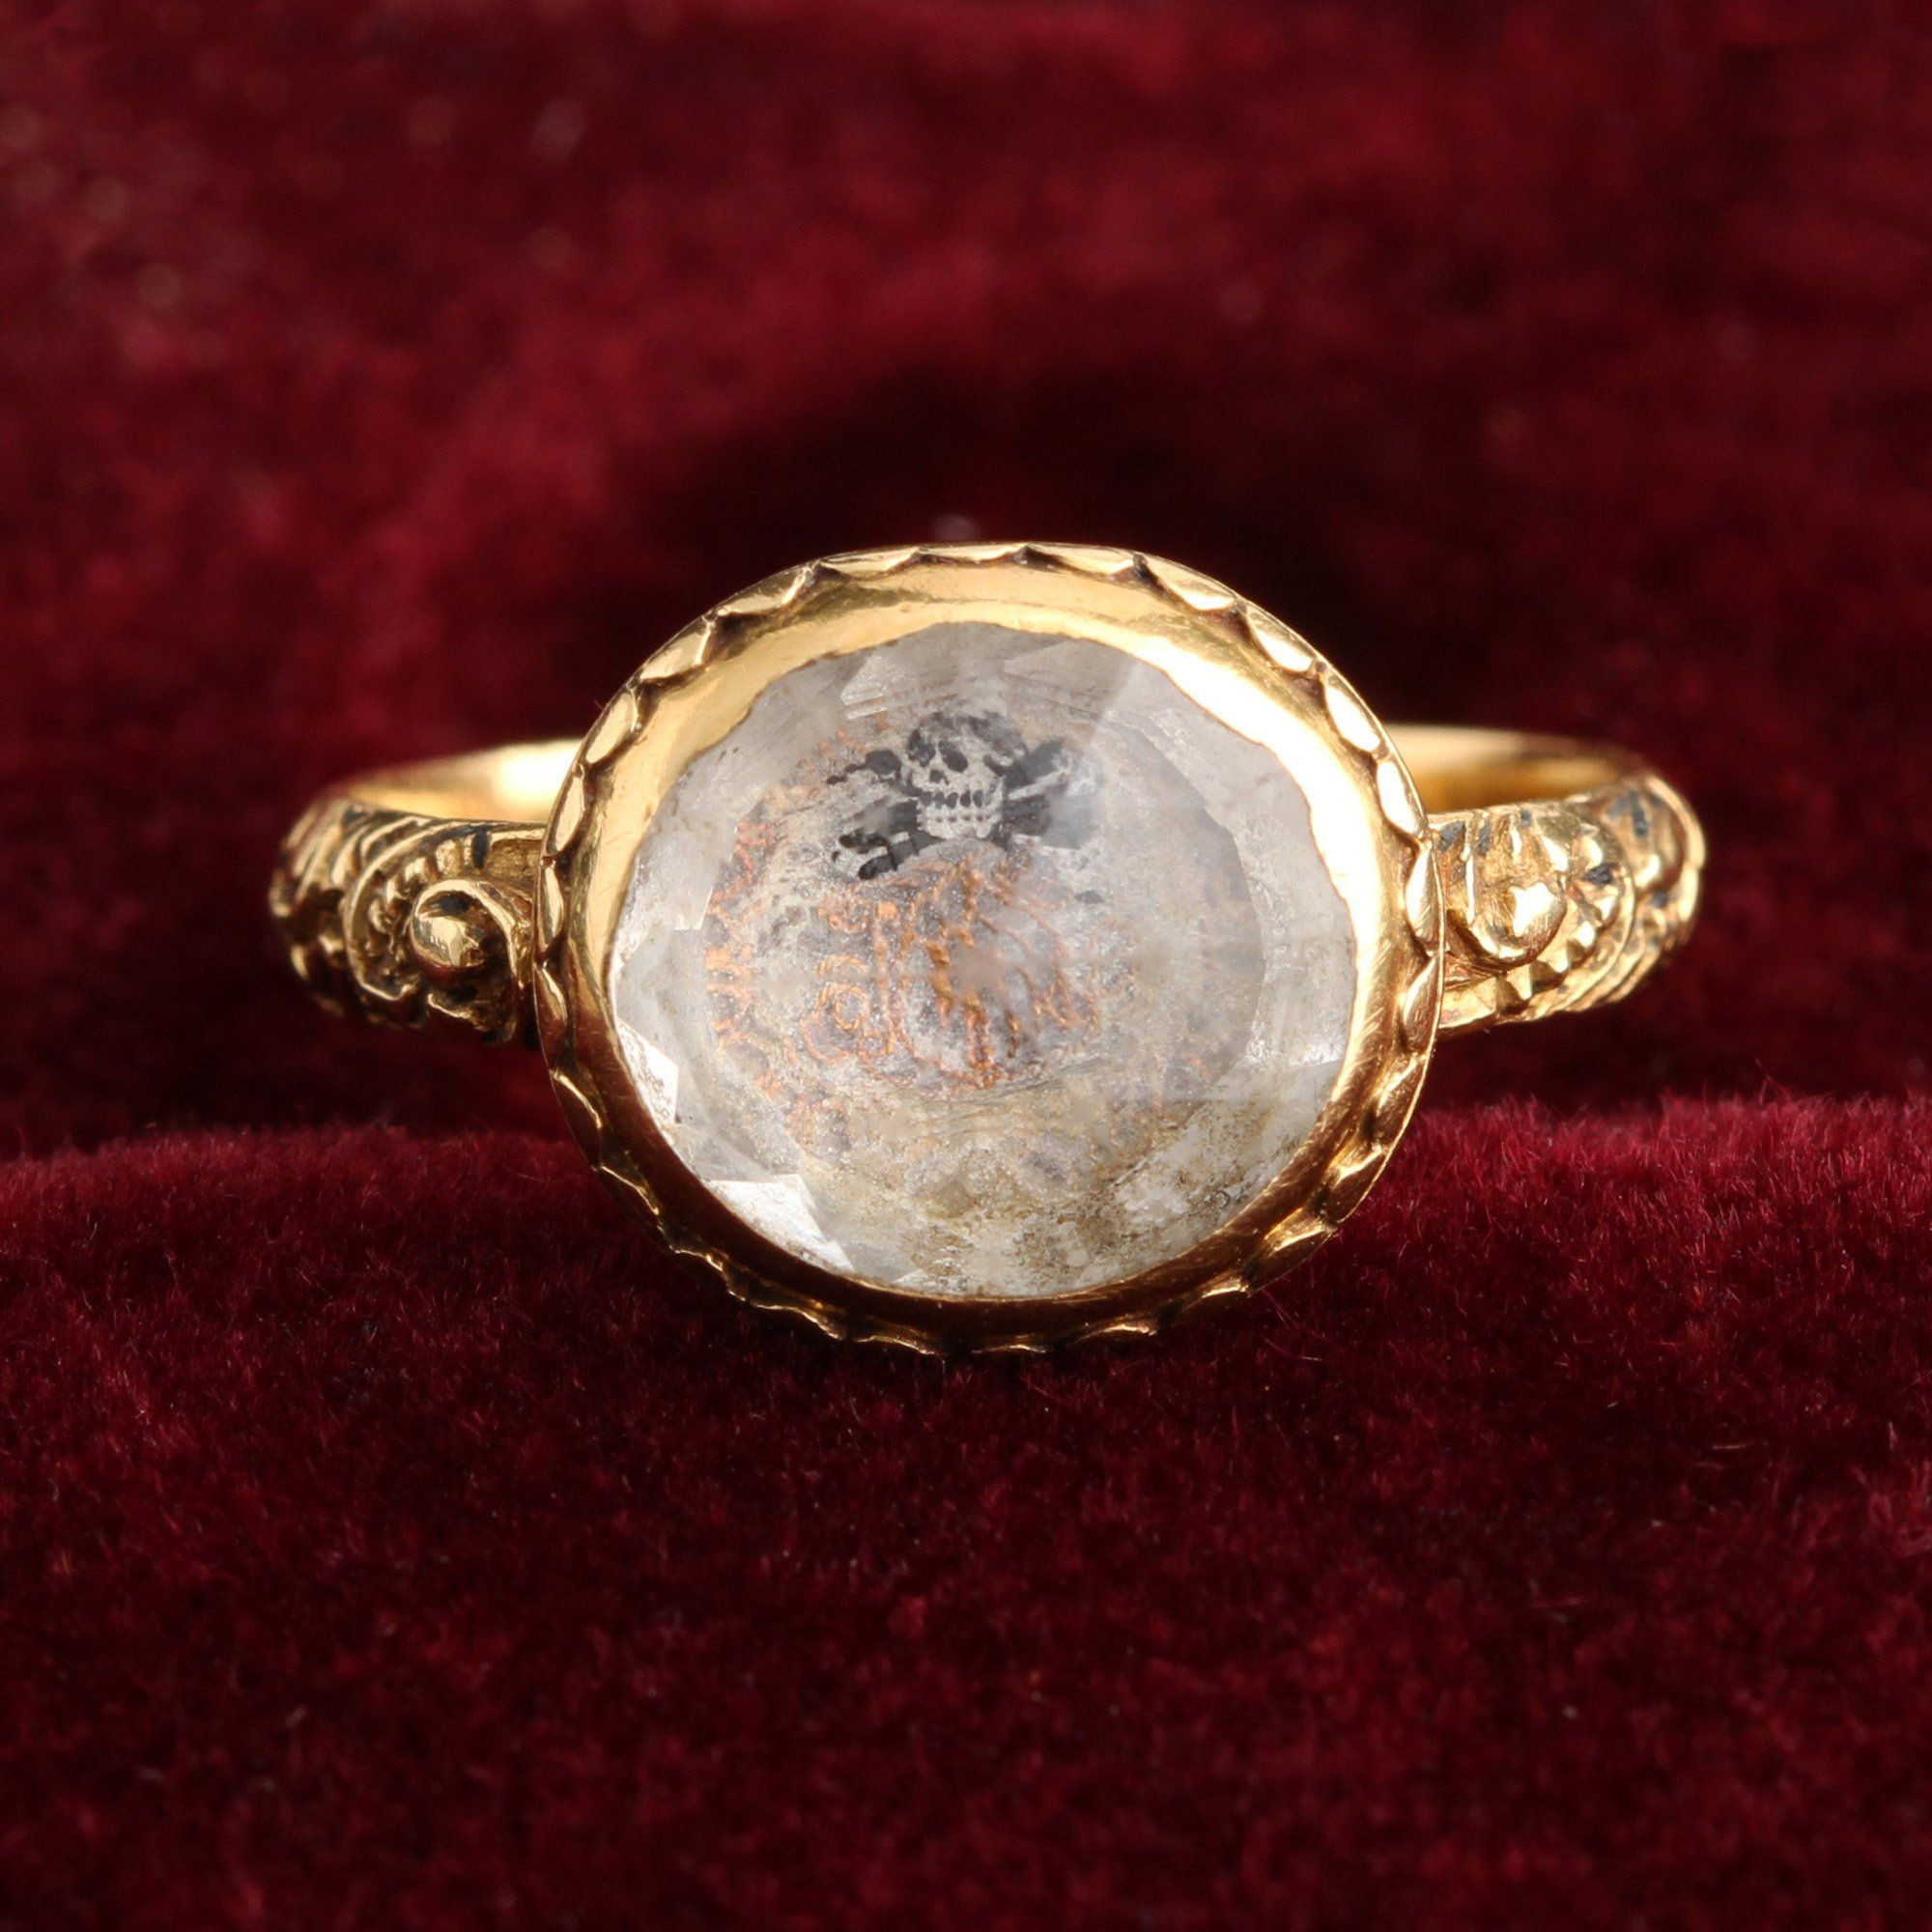 High carat gold stuart crystal mourning ring, c. 1680, from the EWJ archives.